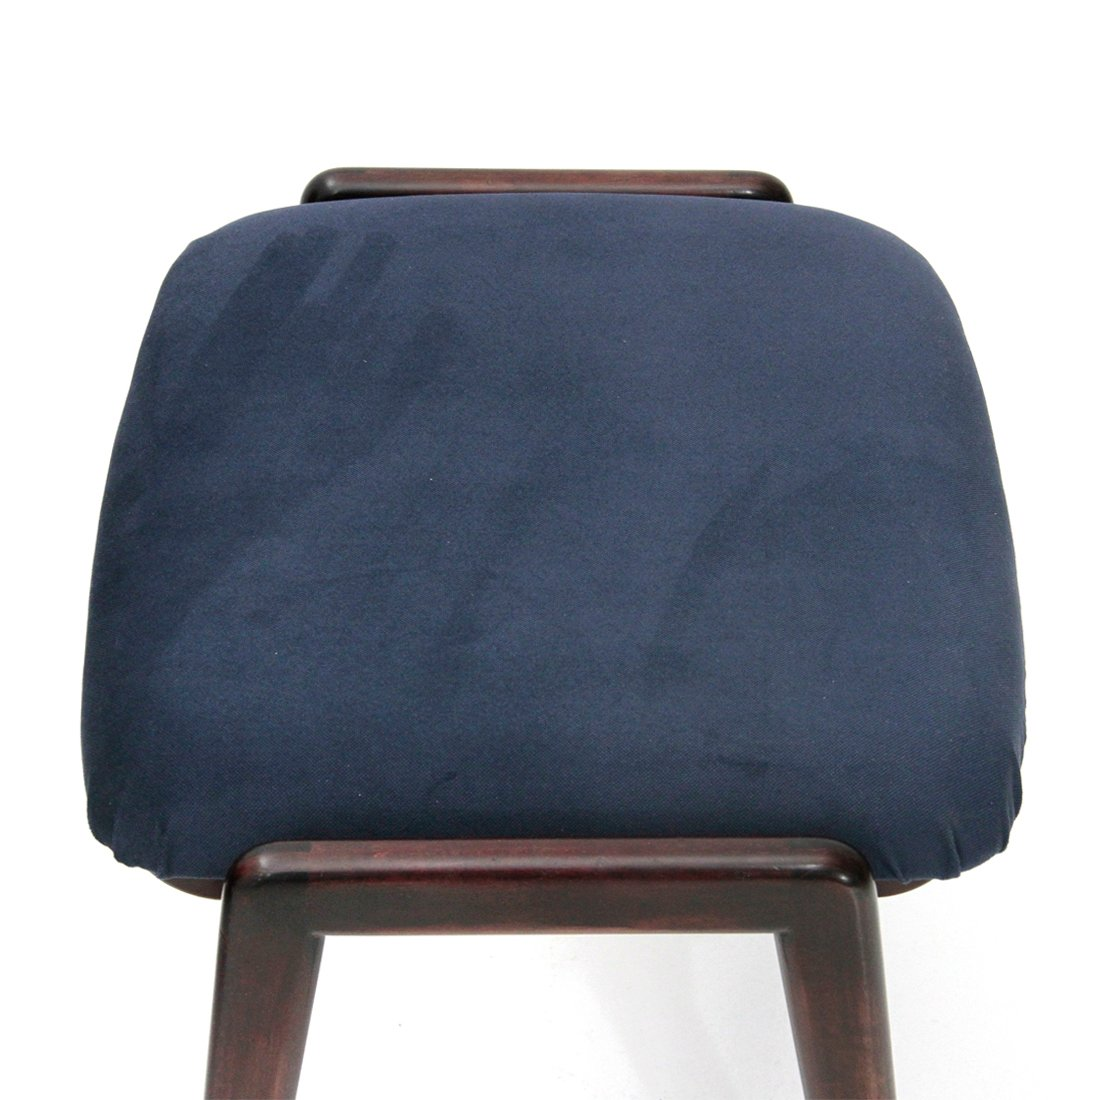 Sessel Pouf Sessel And Pouf Von Adolf Relling And Rolf Rastad Für Cassina